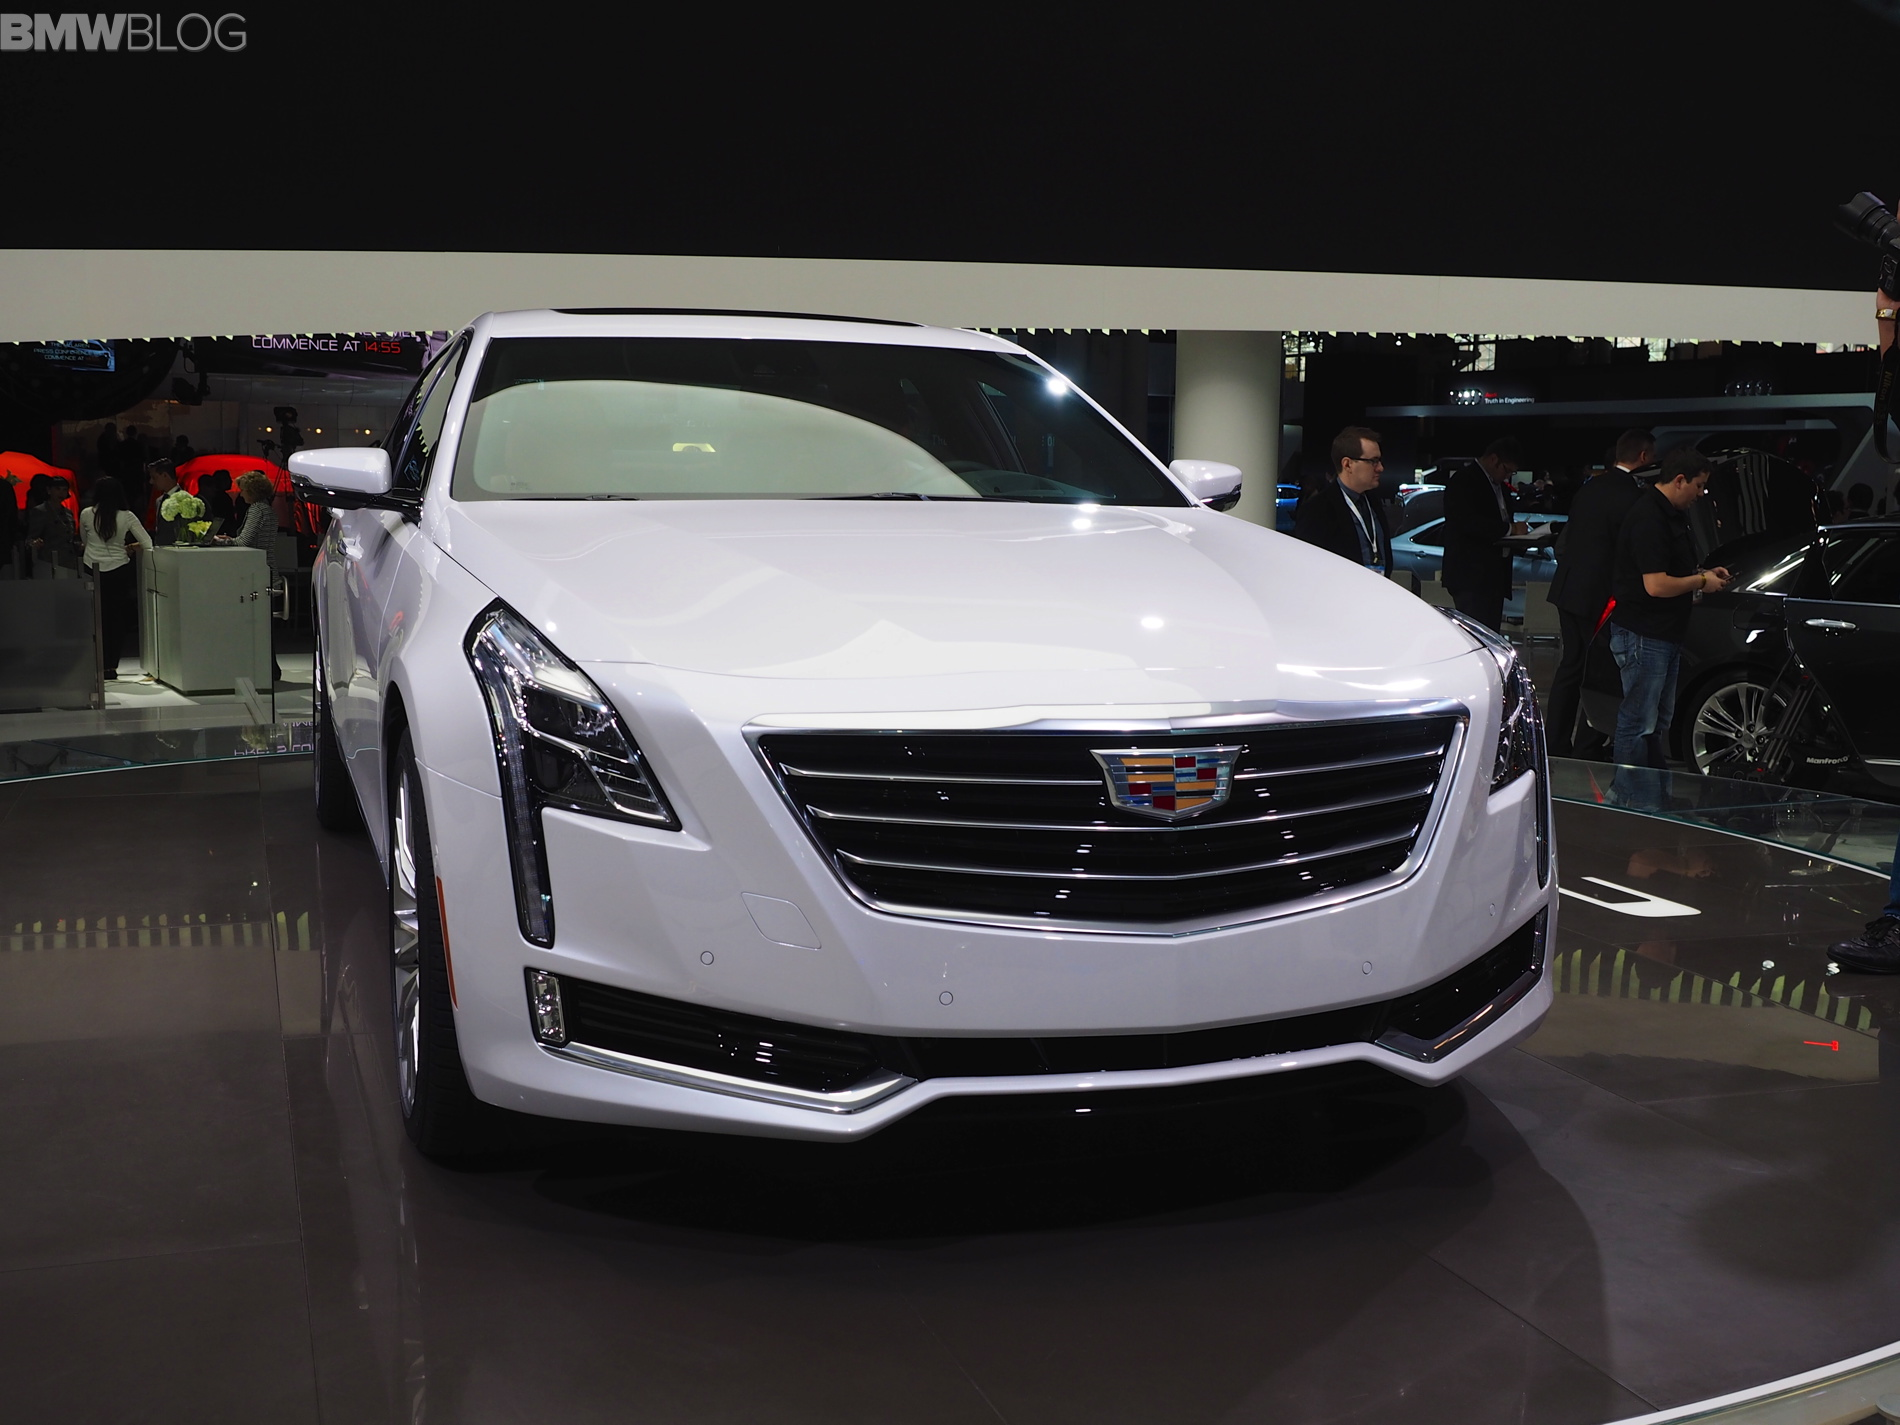 cadillac ct6 new york auto show images 11